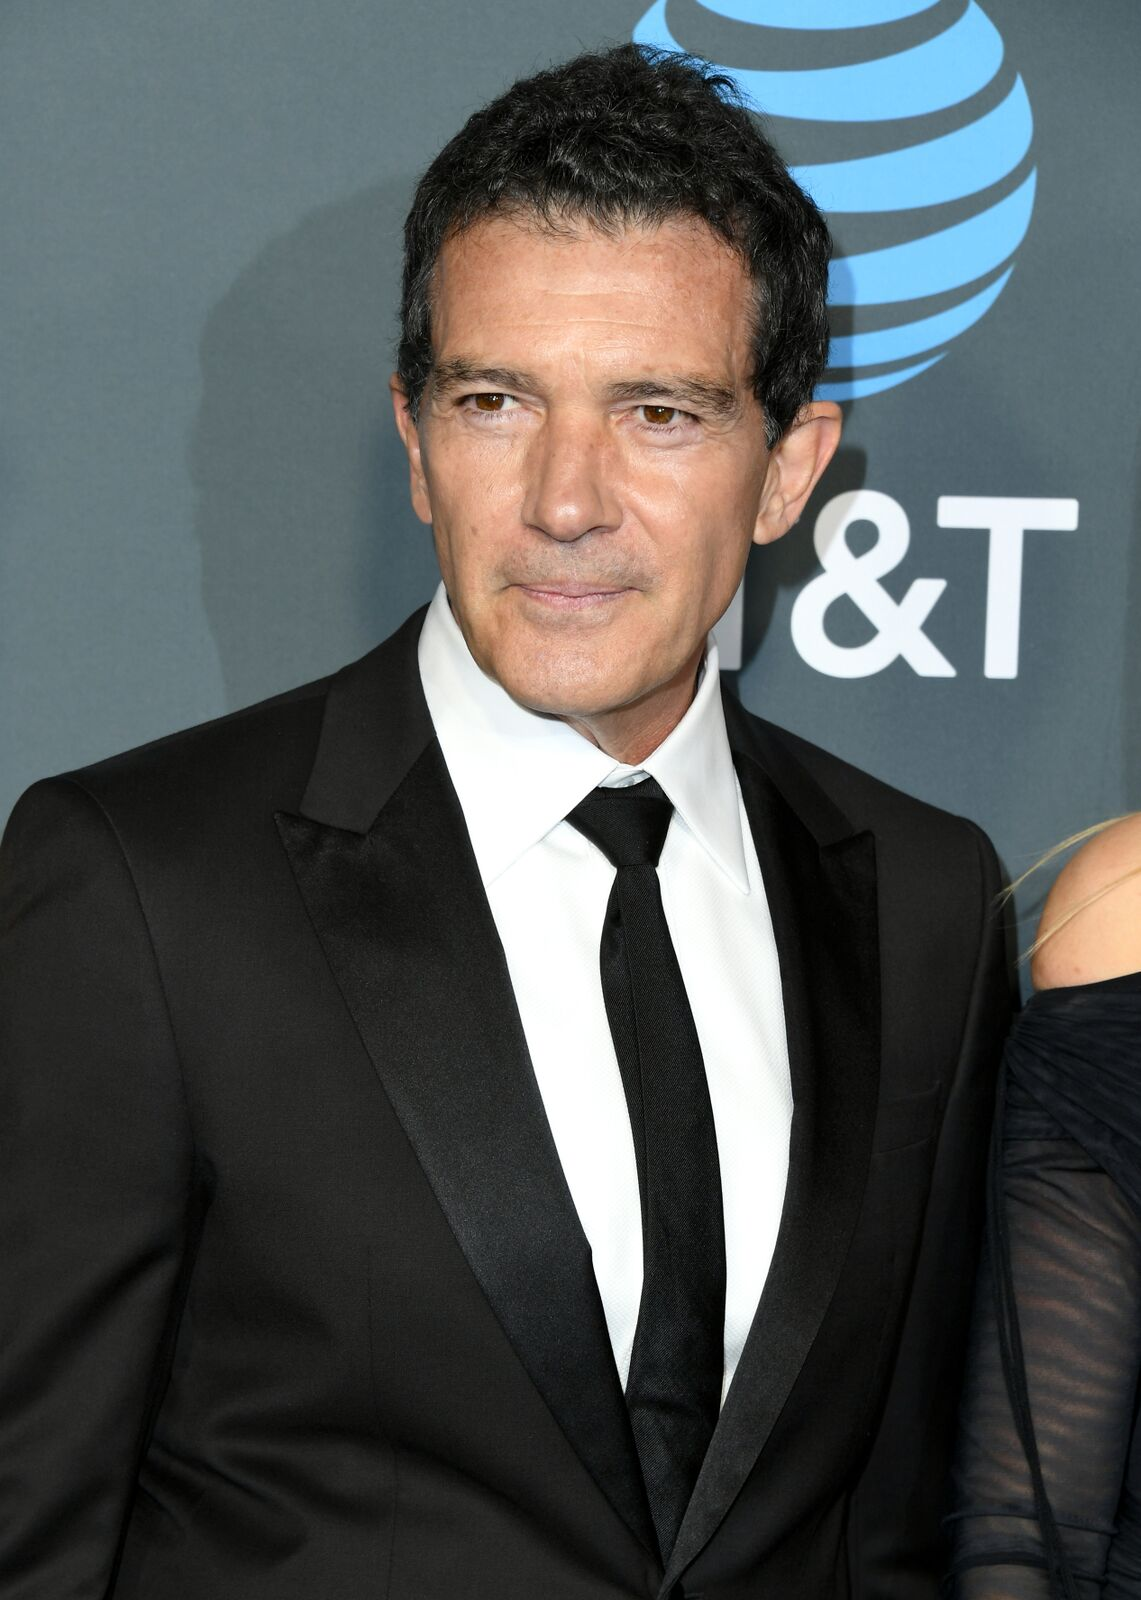 Antonio Banderas assiste à la 24e édition des Critics 'Choice Awards au Barker Hangar le 13 janvier 2019 à Santa Monica, en Californie | Photo: Getty Images